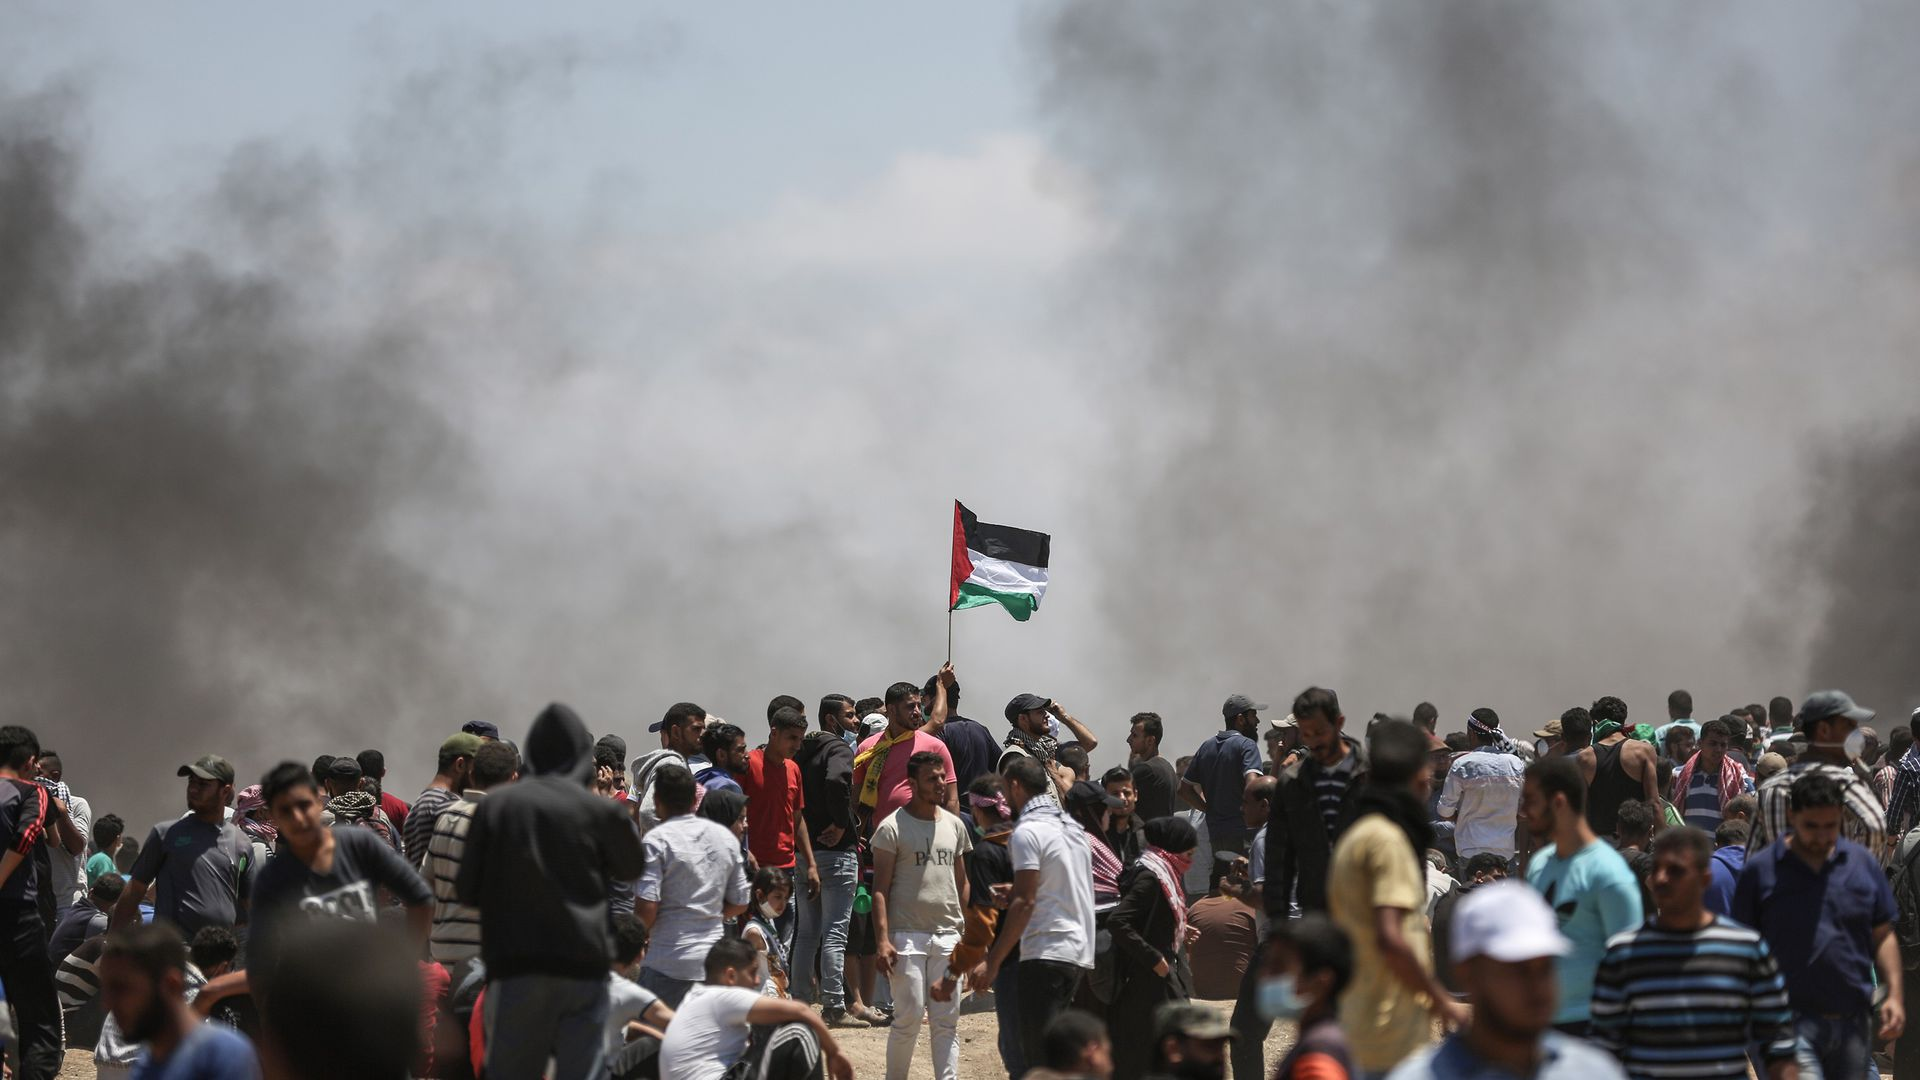 protesters along Gaza border with smoke in background